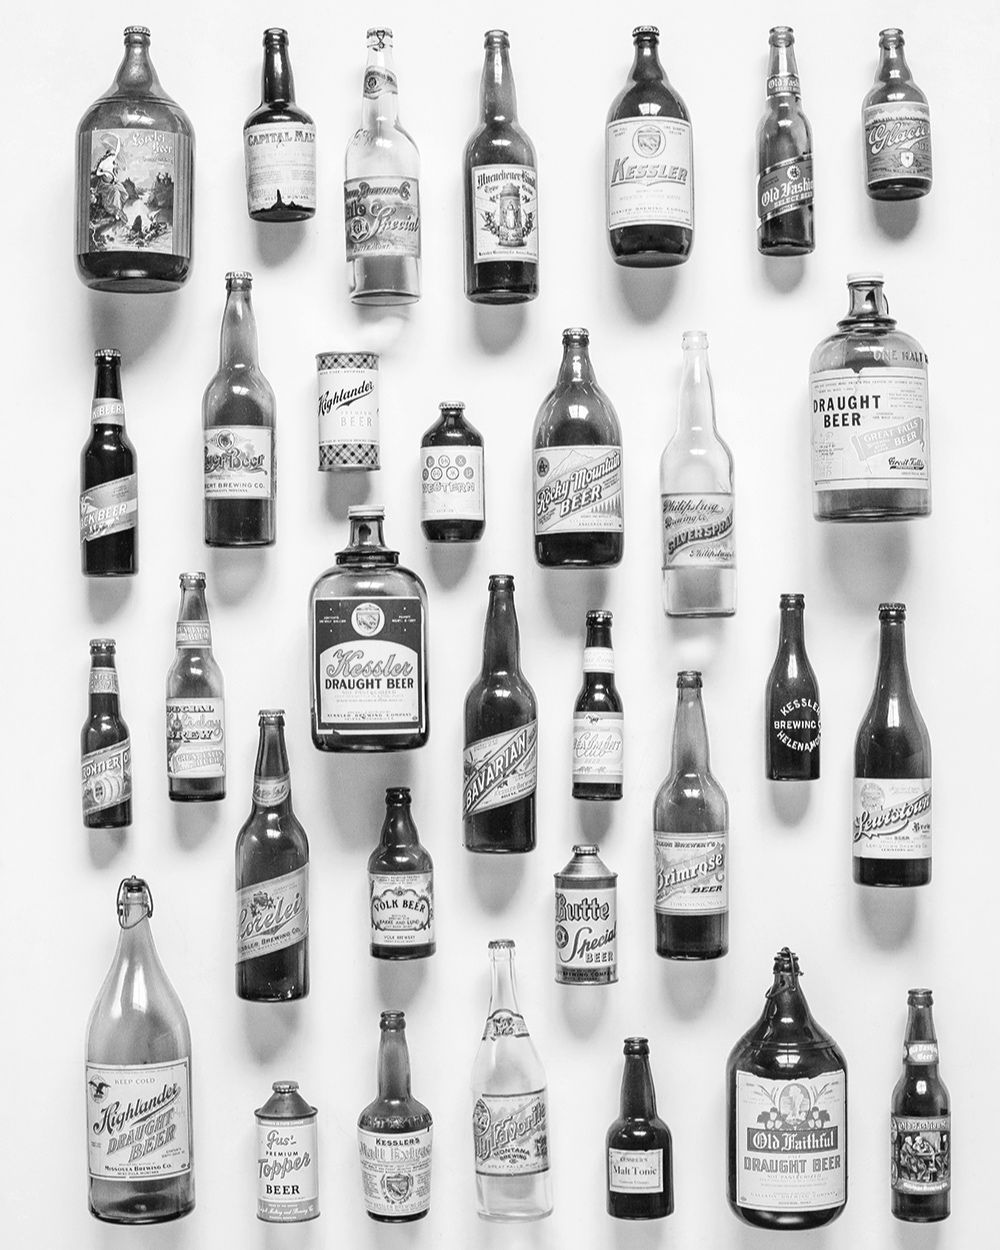 The Beer Collector - Steve Lozar of Polson, Montana has a personal collection of Montana Beer artifacts that is presented as a MONTANA BEER MUSEUM.This collection helped me create the Montana Beer History print.Read on to see this IMPRESSIVE collection.